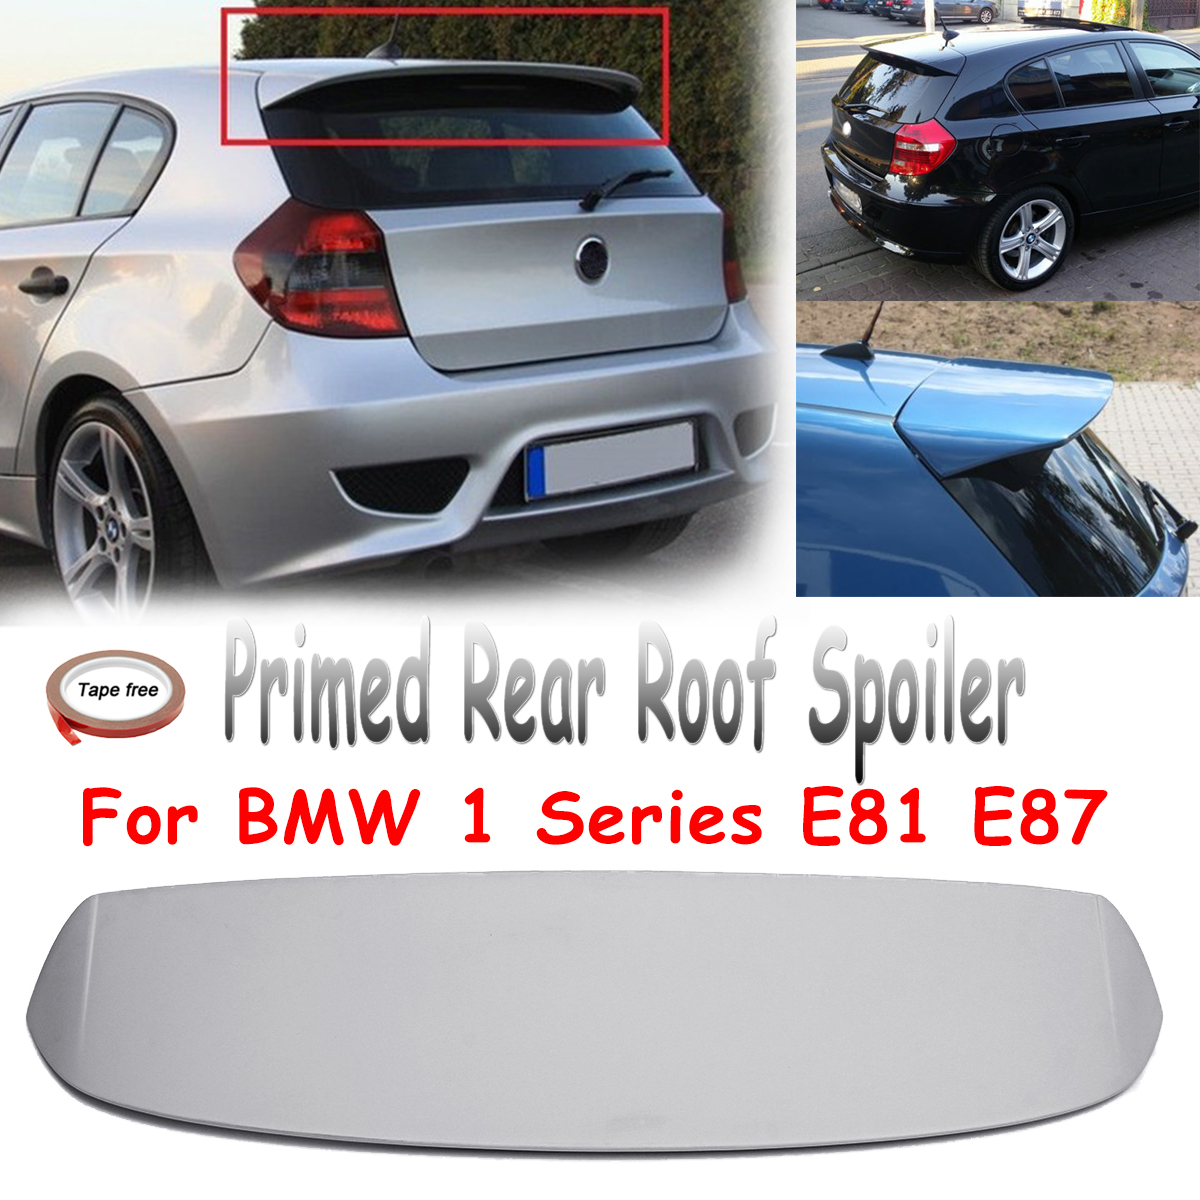 Unpainted Primed Rear Roof Trunk Car Spoiler Wing Fits For BMW 1 Series E81 E87 FRP